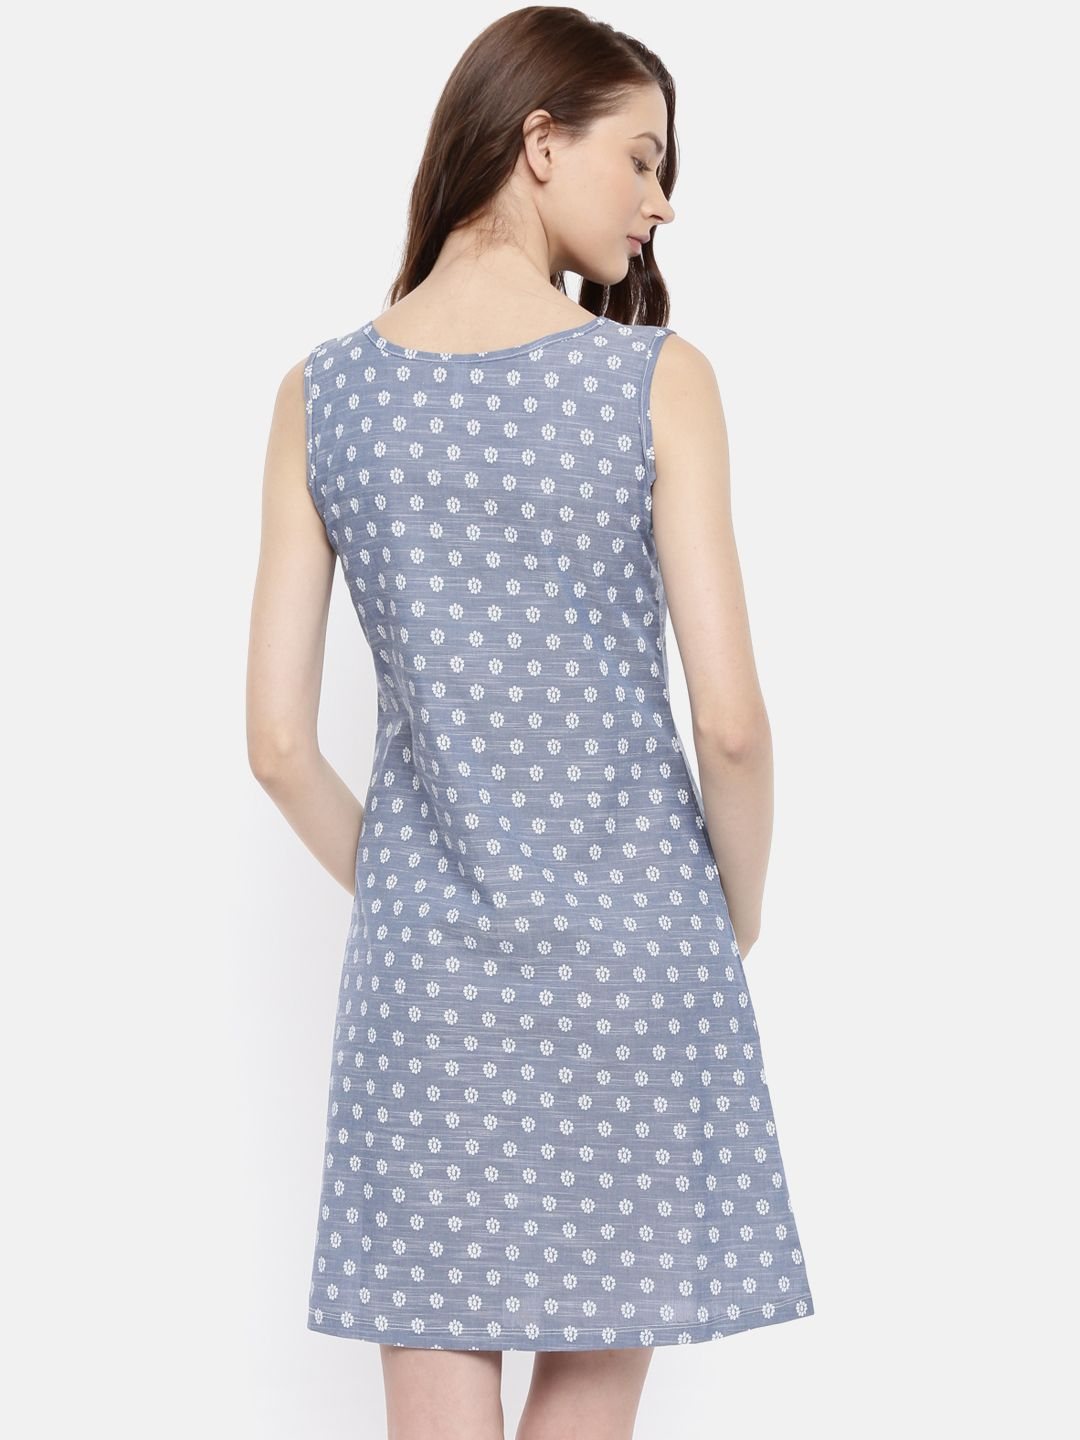 The Blue Printed Sheath Dress